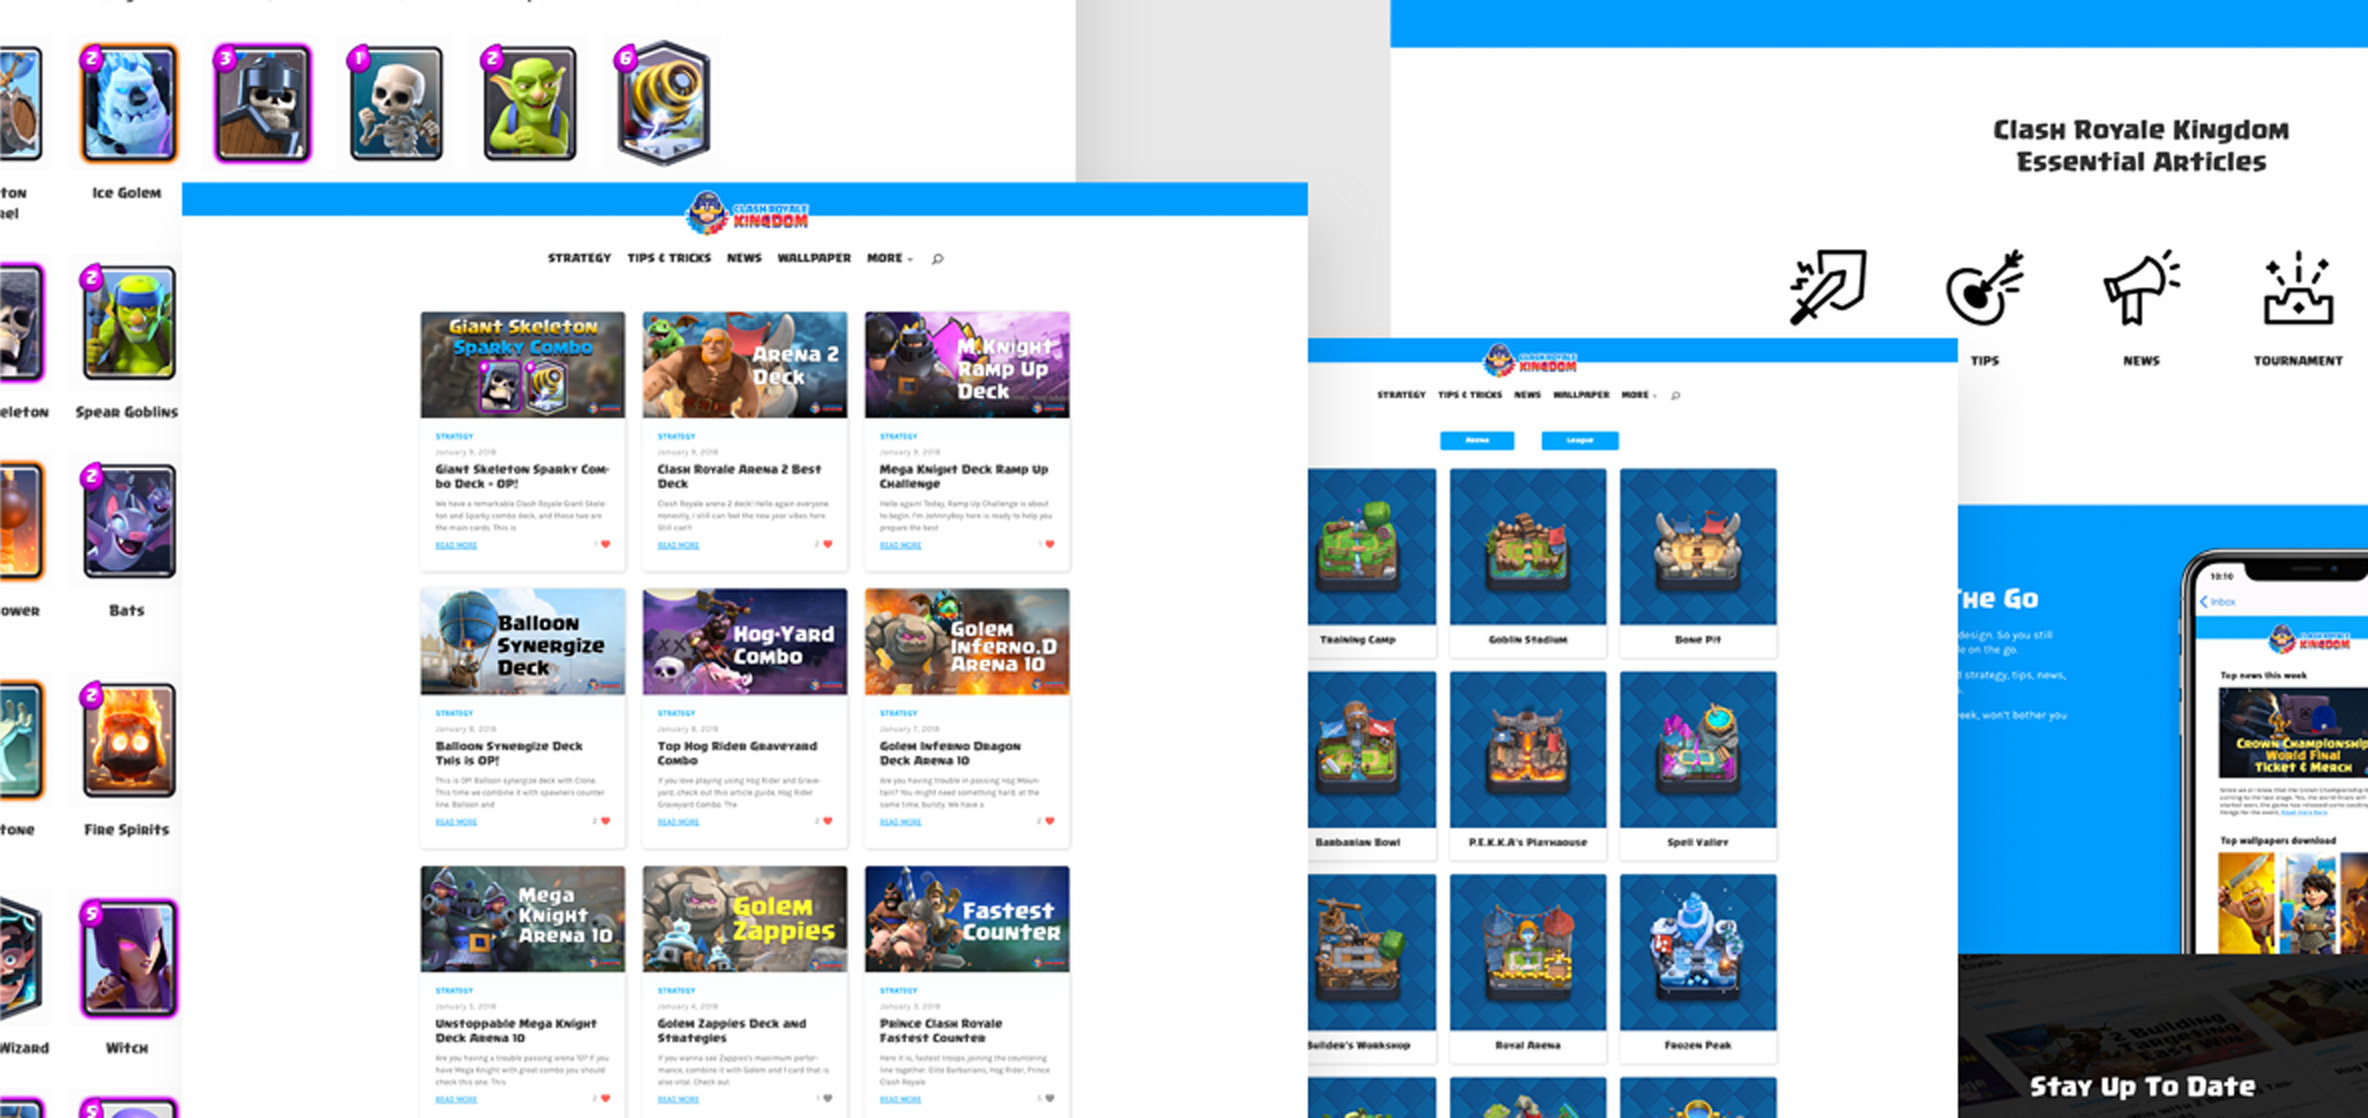 case study clash royale kingdom webpage preview kiebrothers